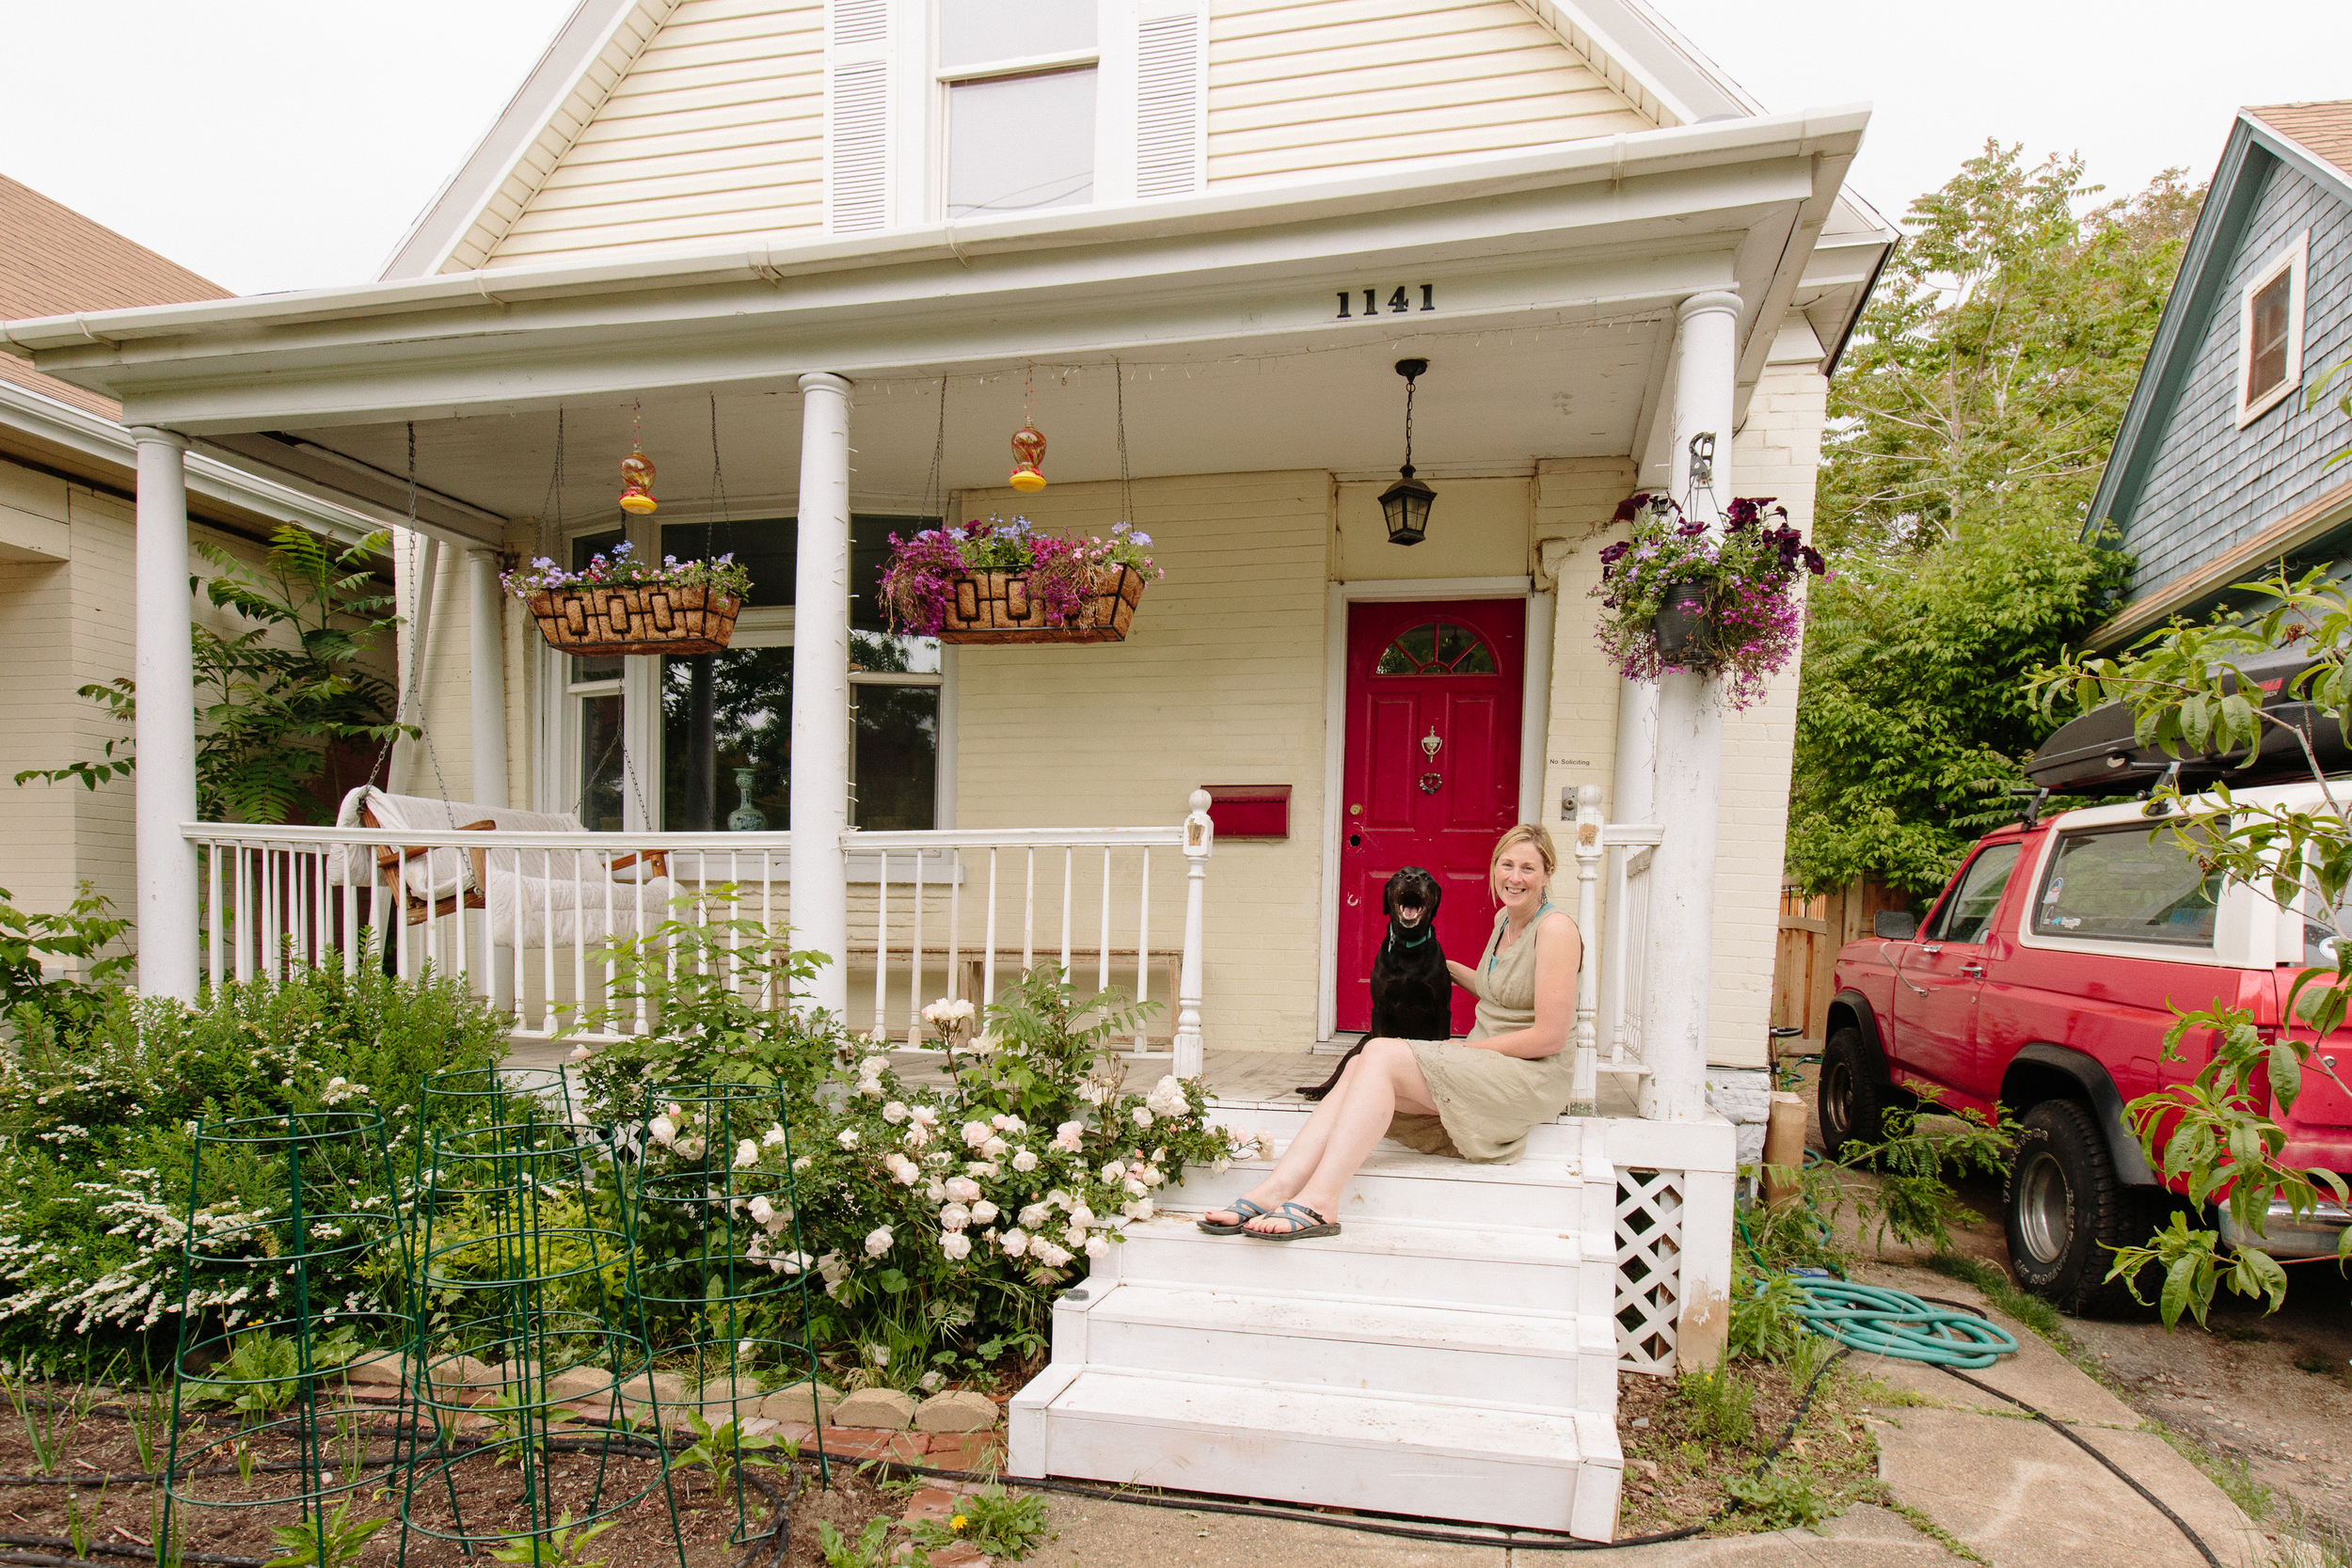 Welcome to Salt Lake! At Hannah's home, you can choose to rent out one or two bedrooms, or have the whole house to yourself.